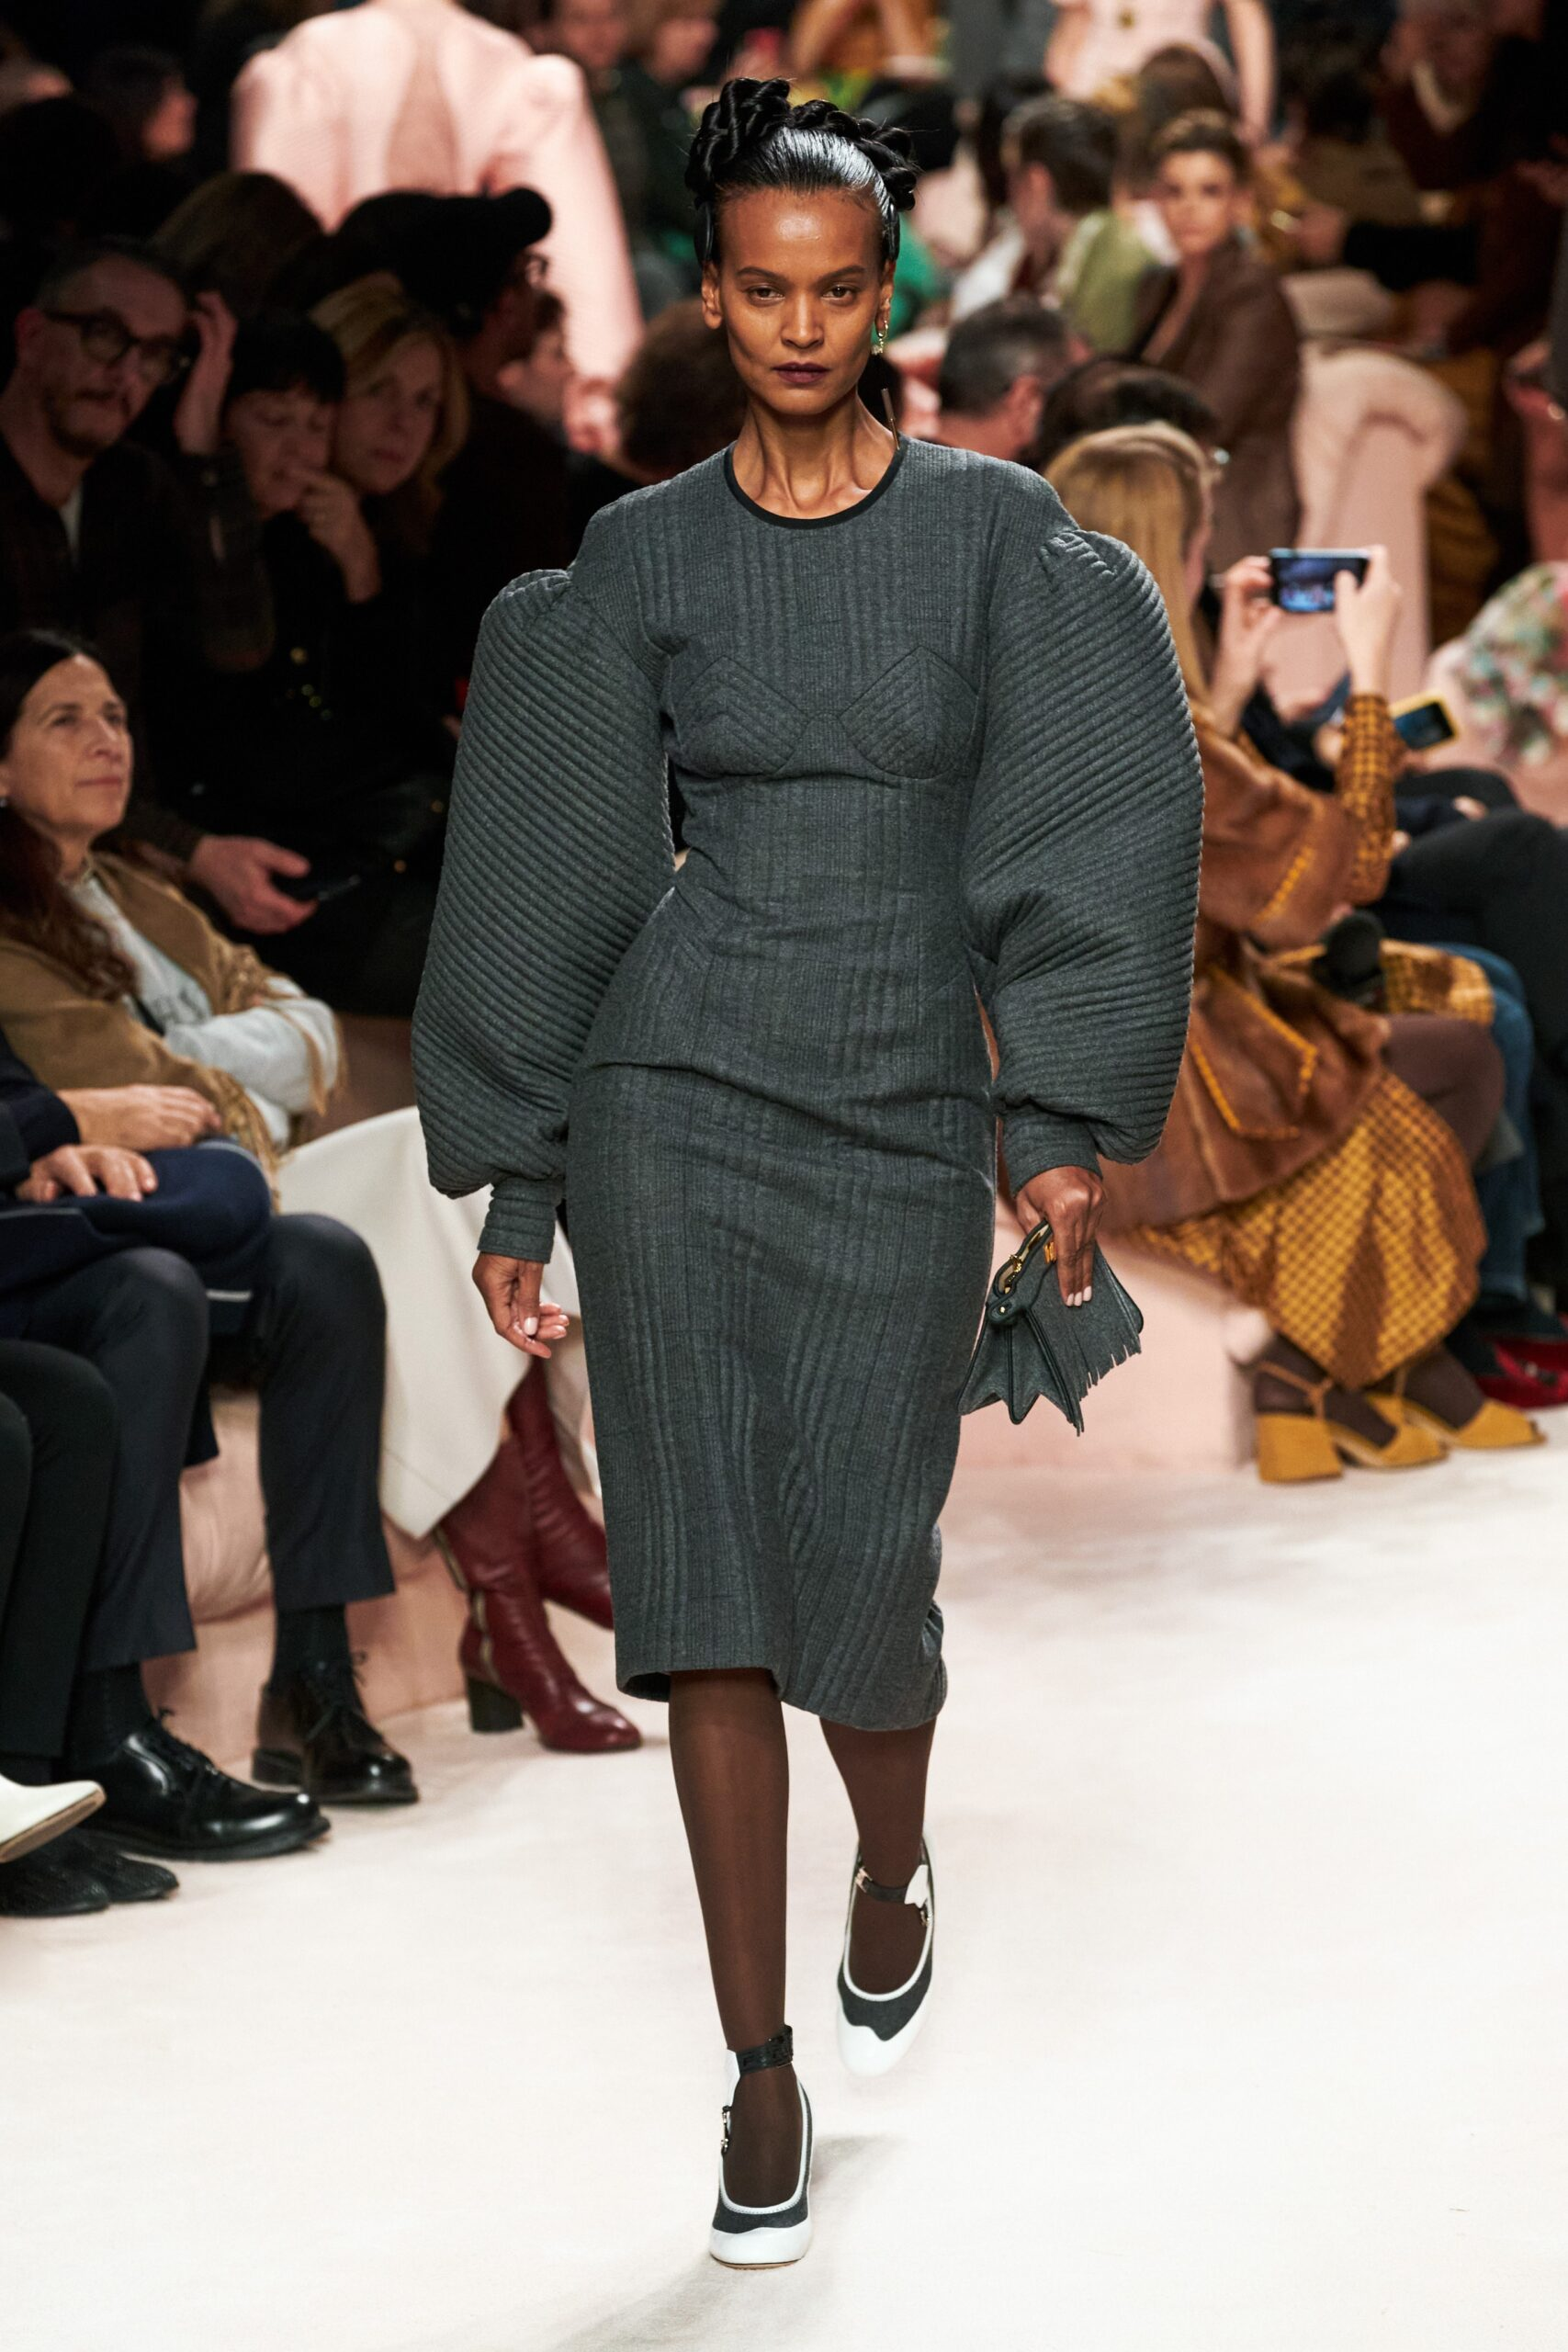 Fendi Fall 2020 ready-to-wear